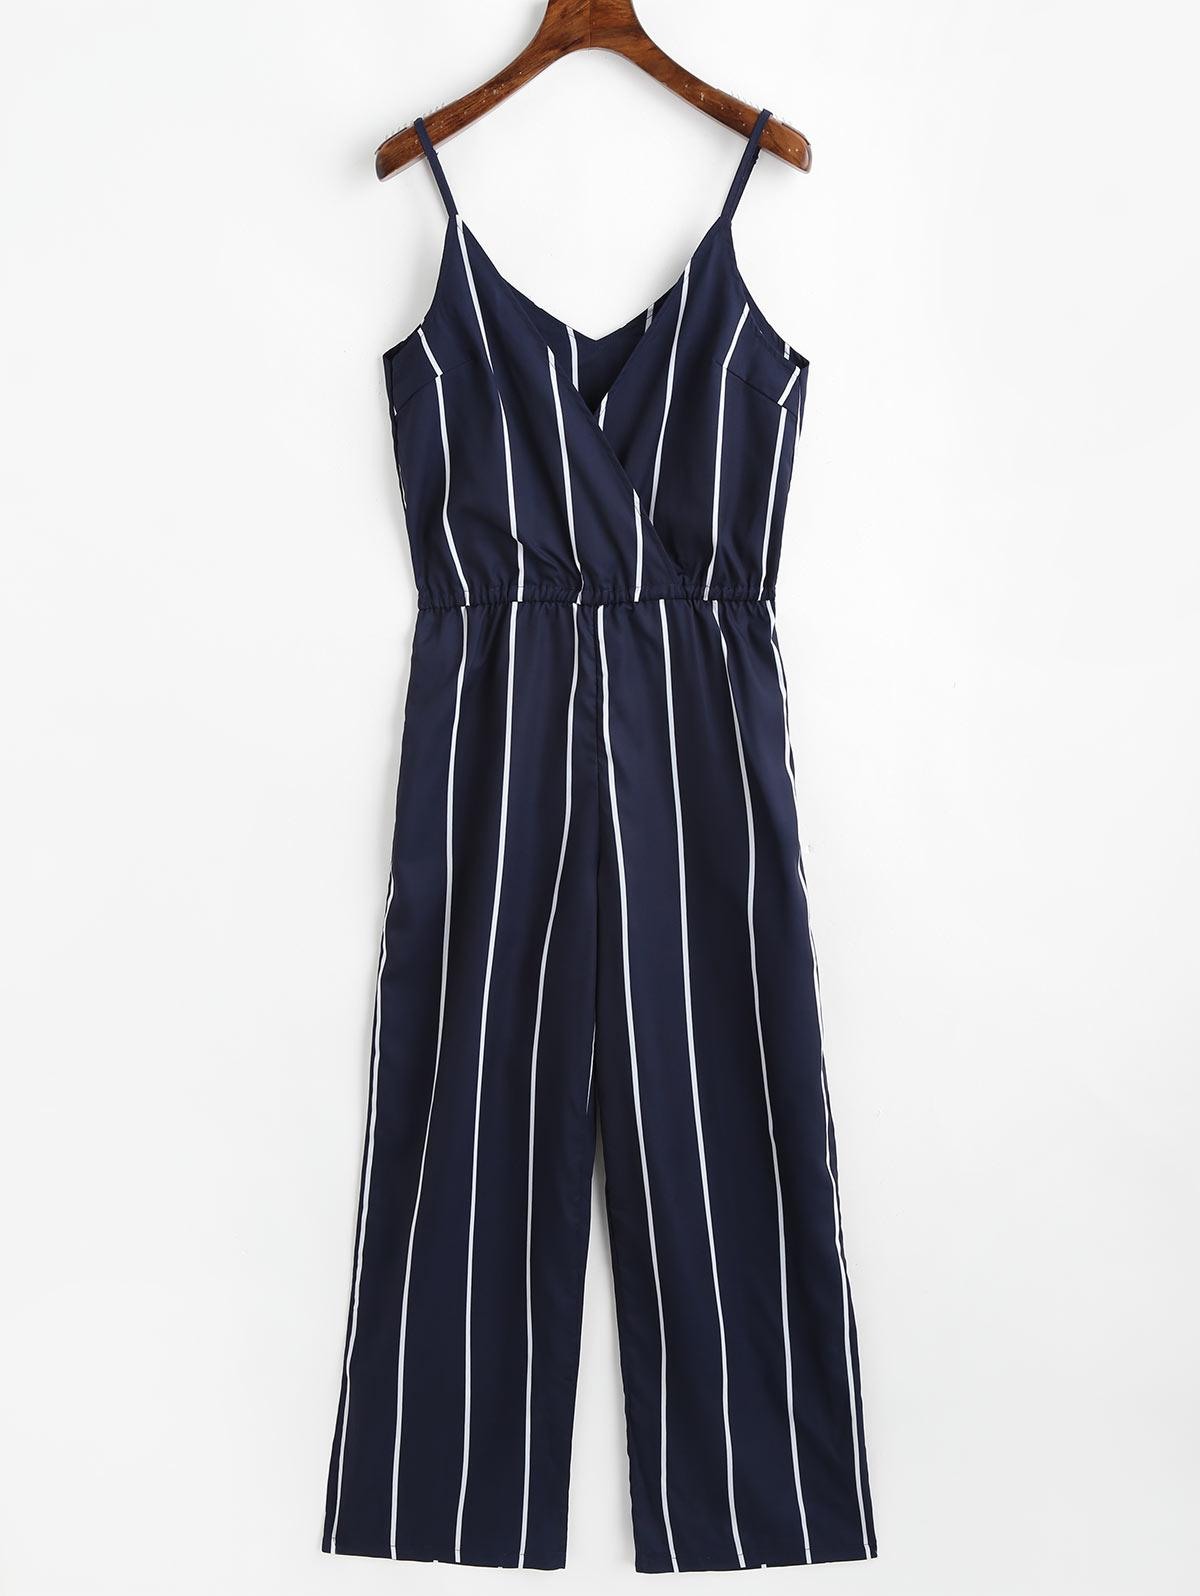 52ff298fe1ff 2019 ZAFUL Women Striped Jumpsuit Spaghetti Strap Sleeveless V Neck Romper  Casual Playsuit Summer Female Overalls Long Trousers Pants From Dayup